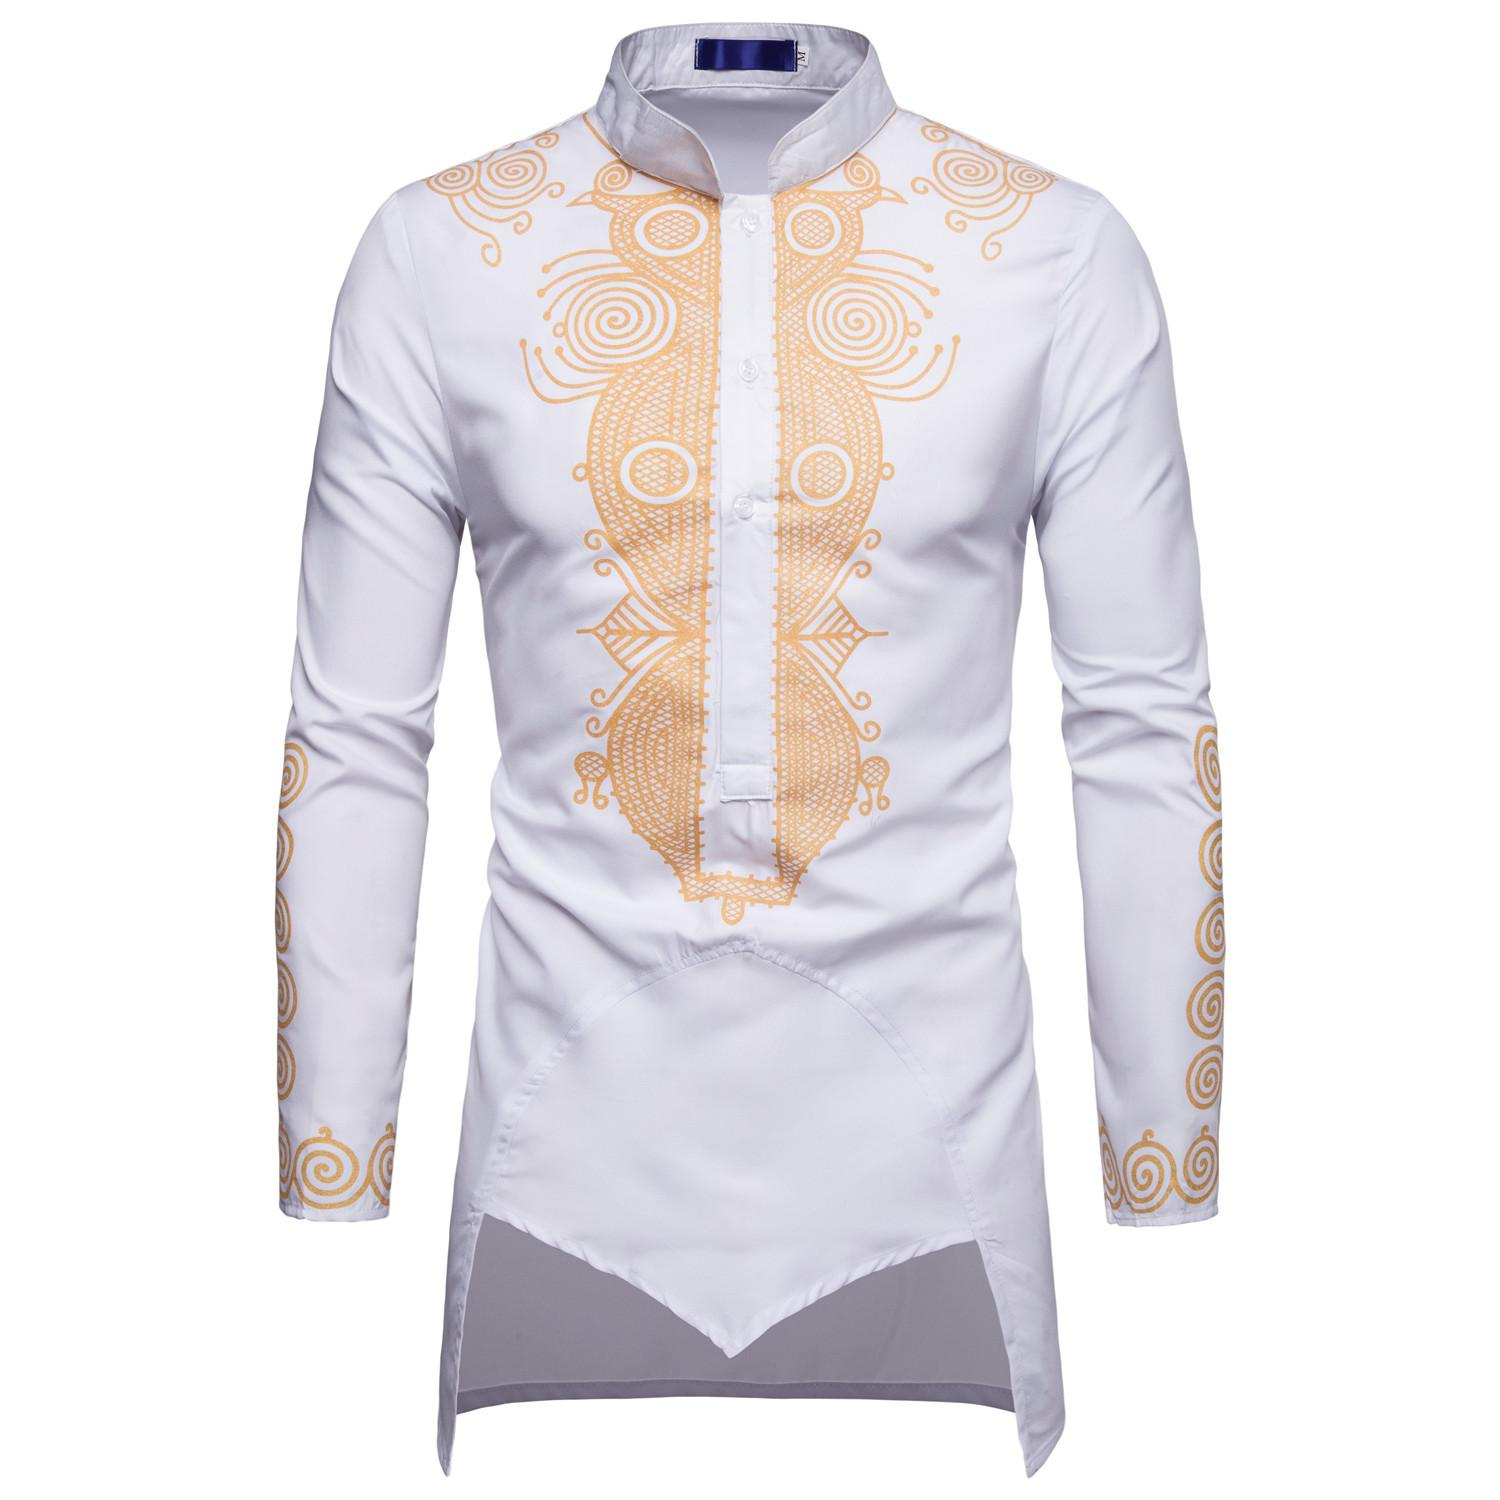 10e3bf290f Men's Shirt Autumn And Winter New Casual Collars Long Shirt Middle ...